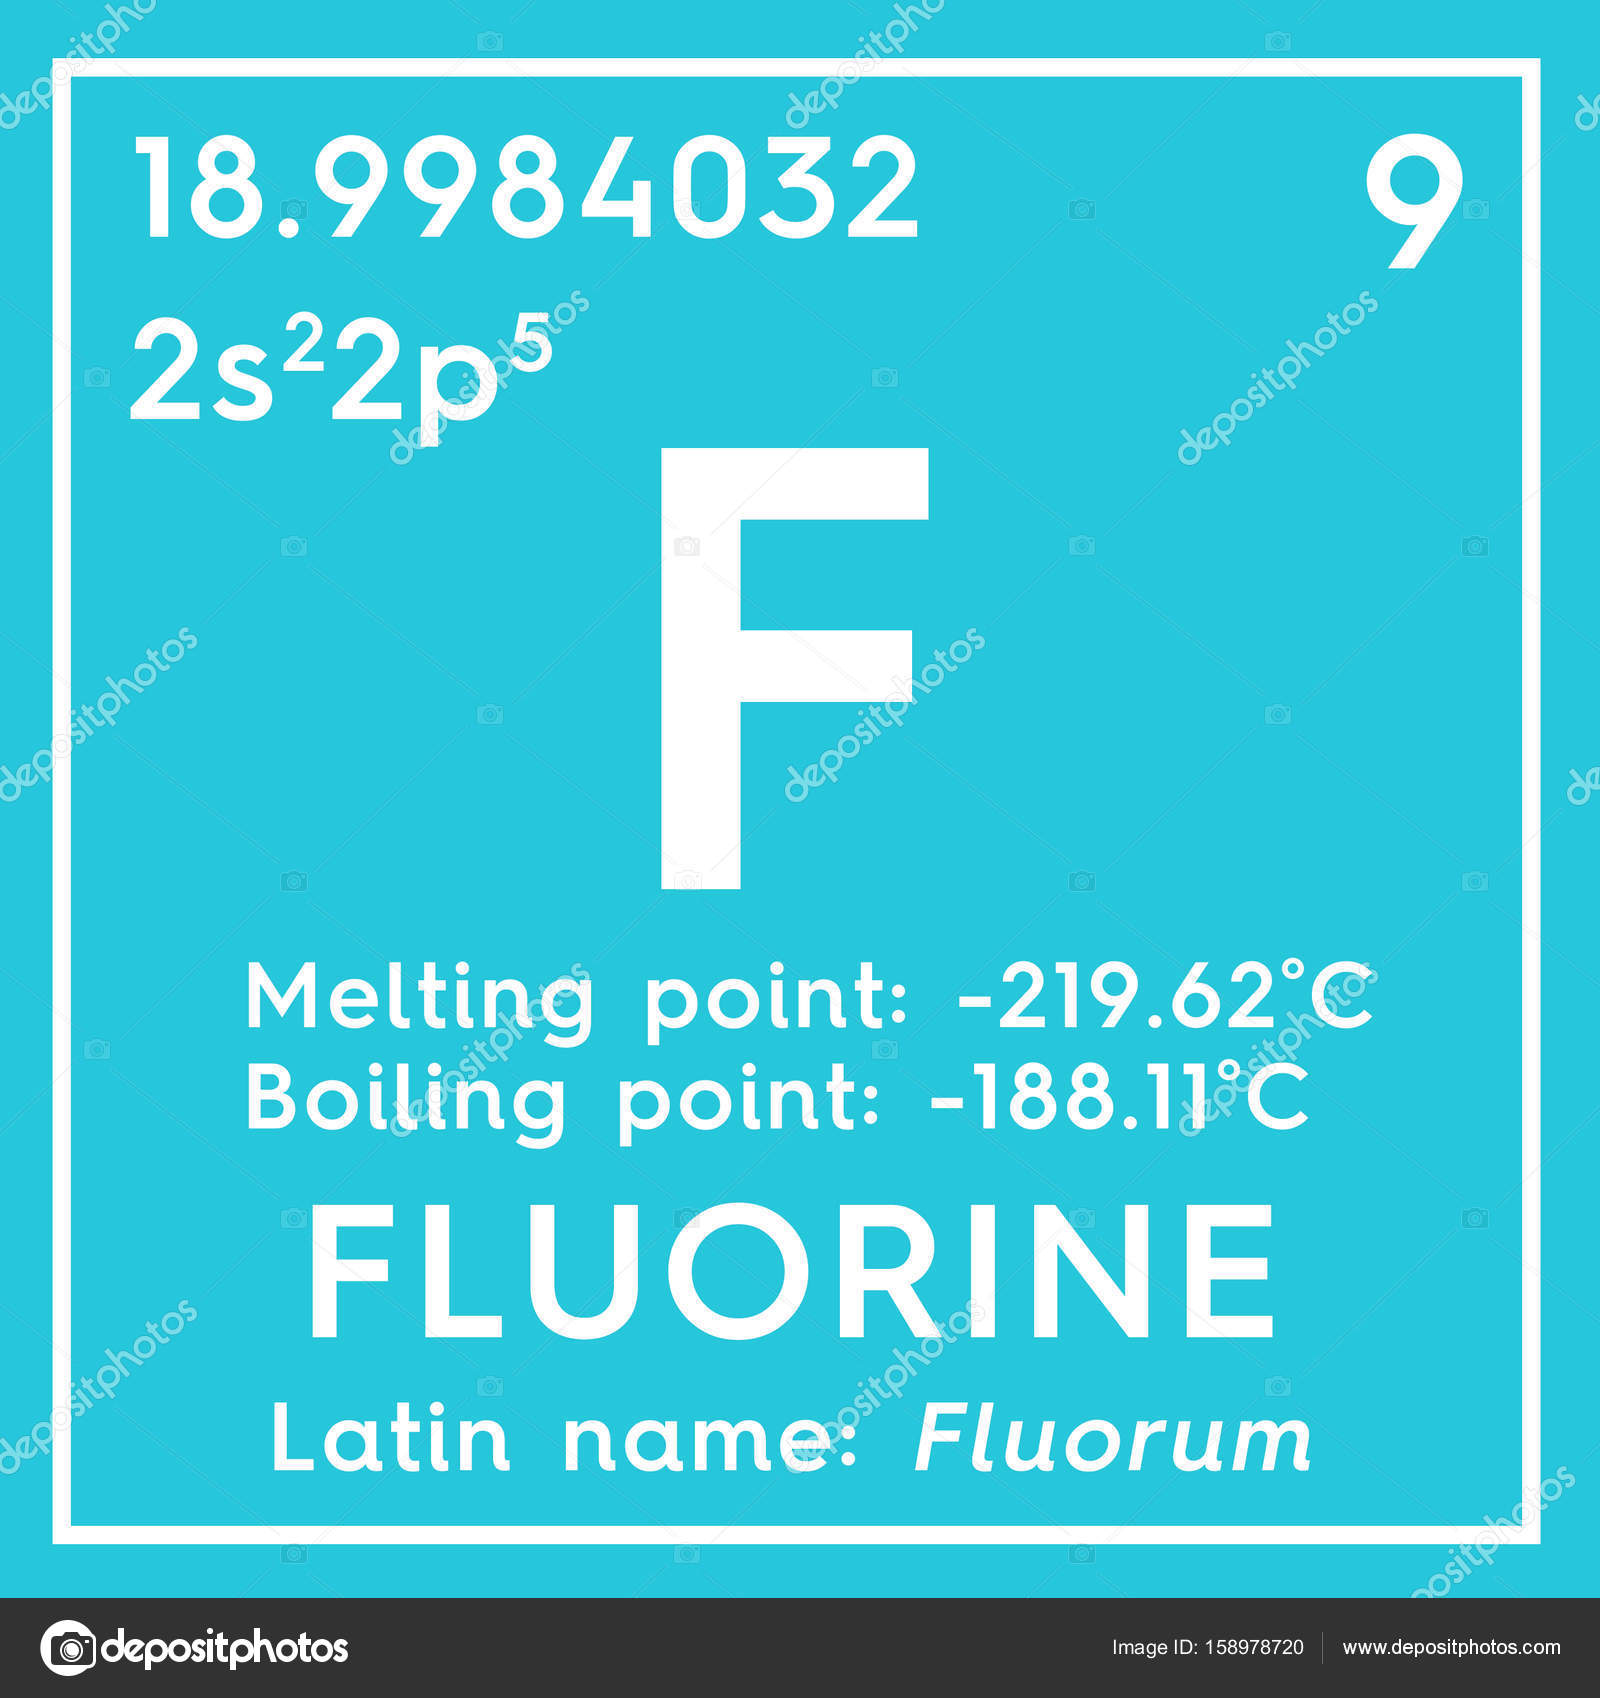 Fluorine halogens chemical element of mendeleevs periodic table fluorine halogens chemical element of mendeleevs periodic table fluorine in square cube creative concept photo by sanches812 urtaz Gallery